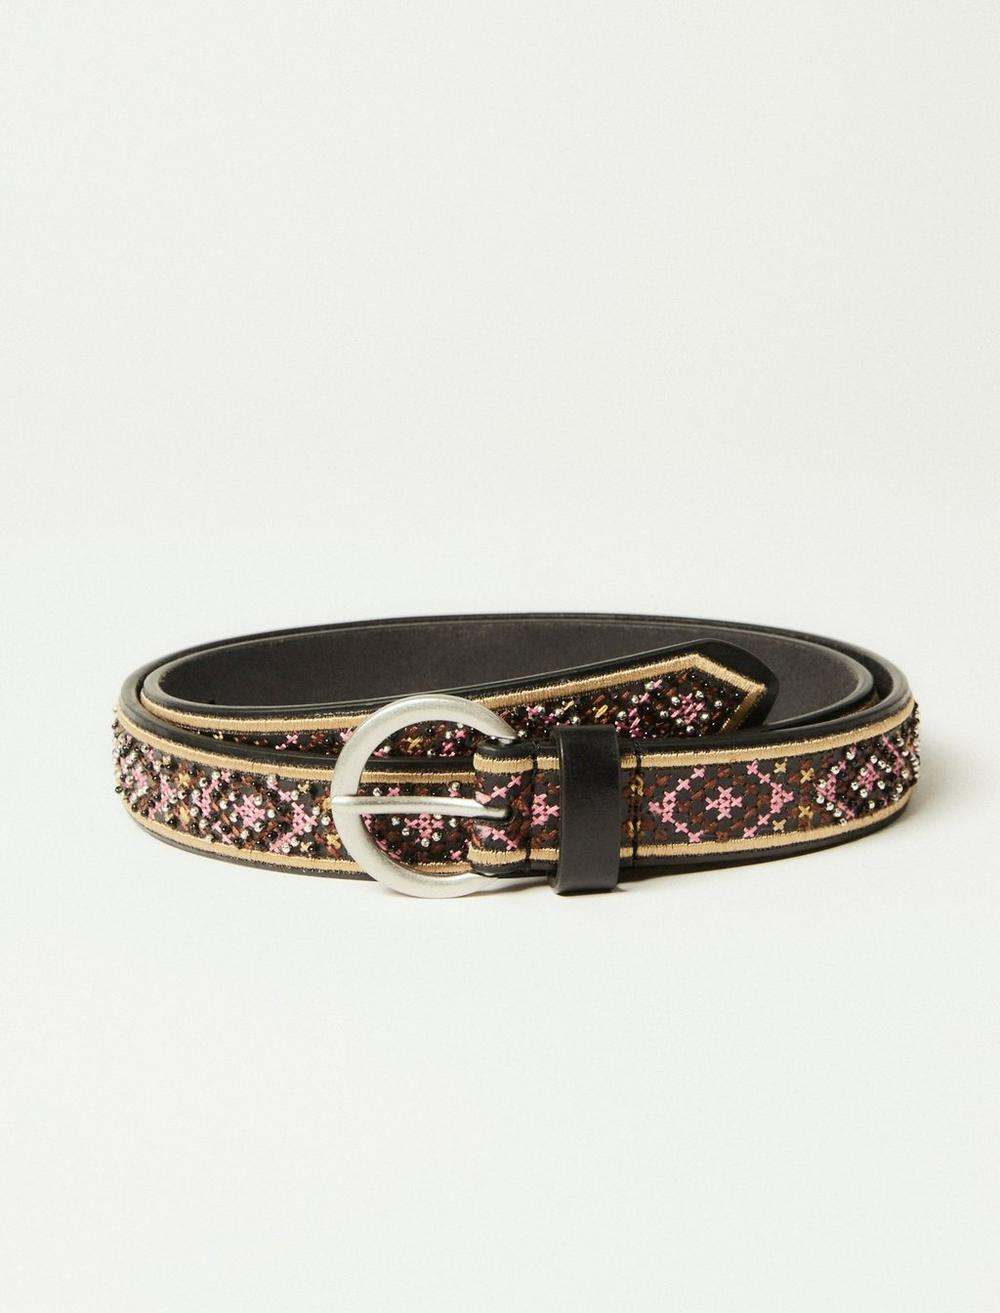 MULTI COLORED GEO EMBROIDERY BELT, image 1